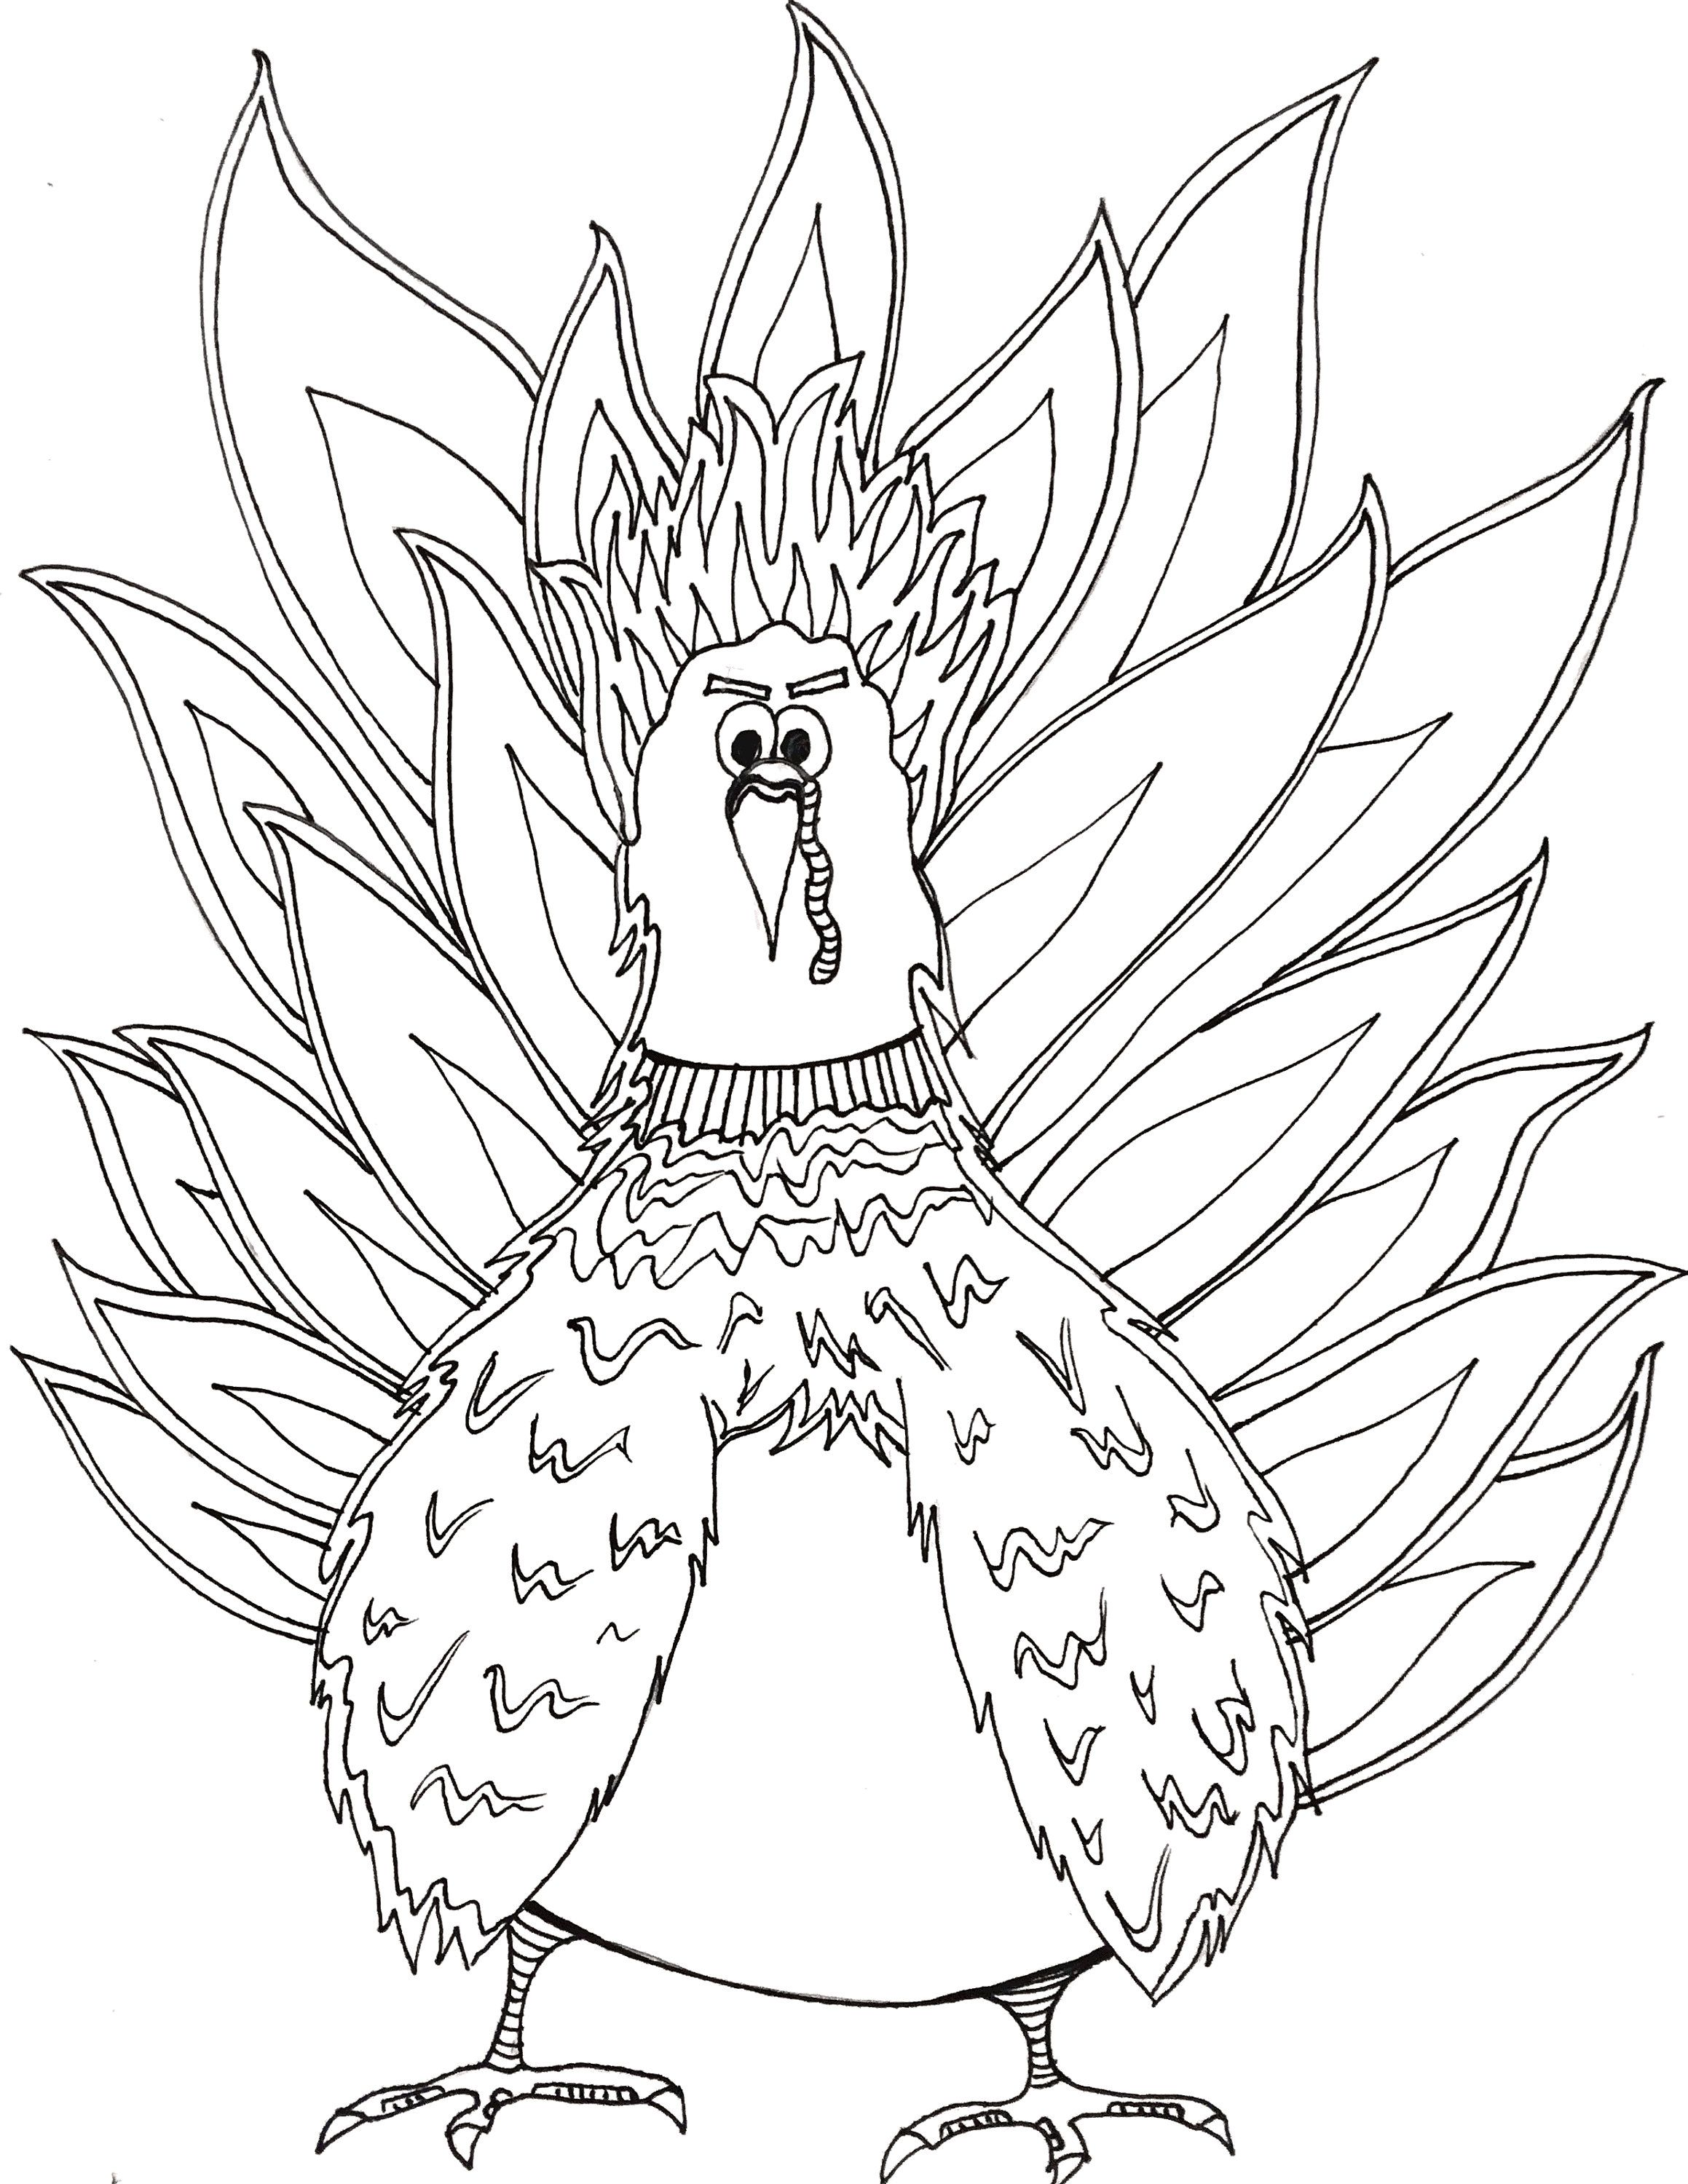 Thanksgiving Turkey Coloring Page Turkey coloring pages